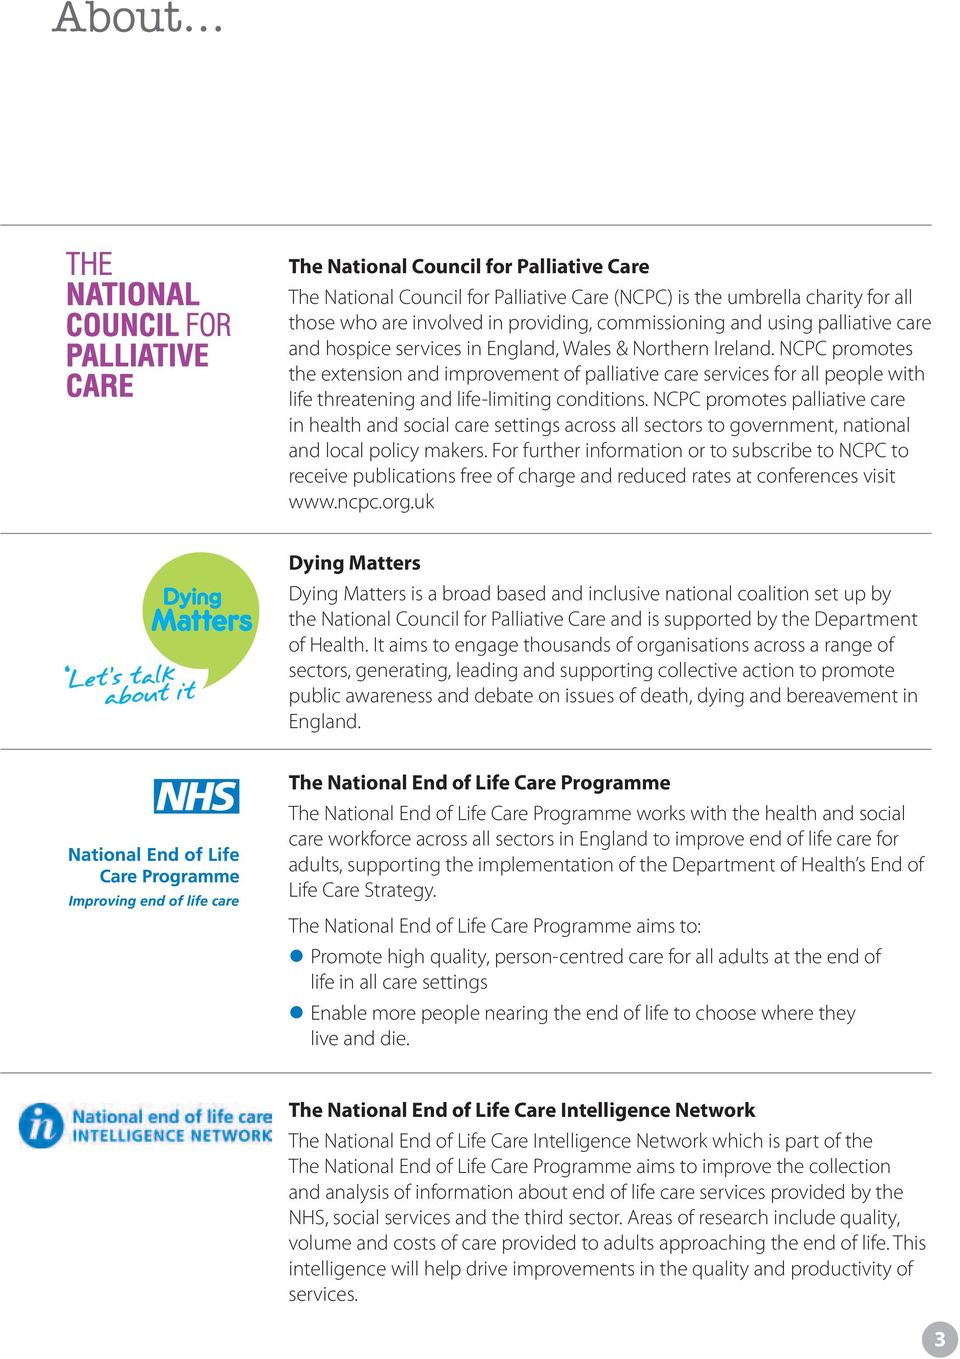 NCPC promotes the extension and improvement of palliative care services for all people with life threatening and life-limiting conditions.